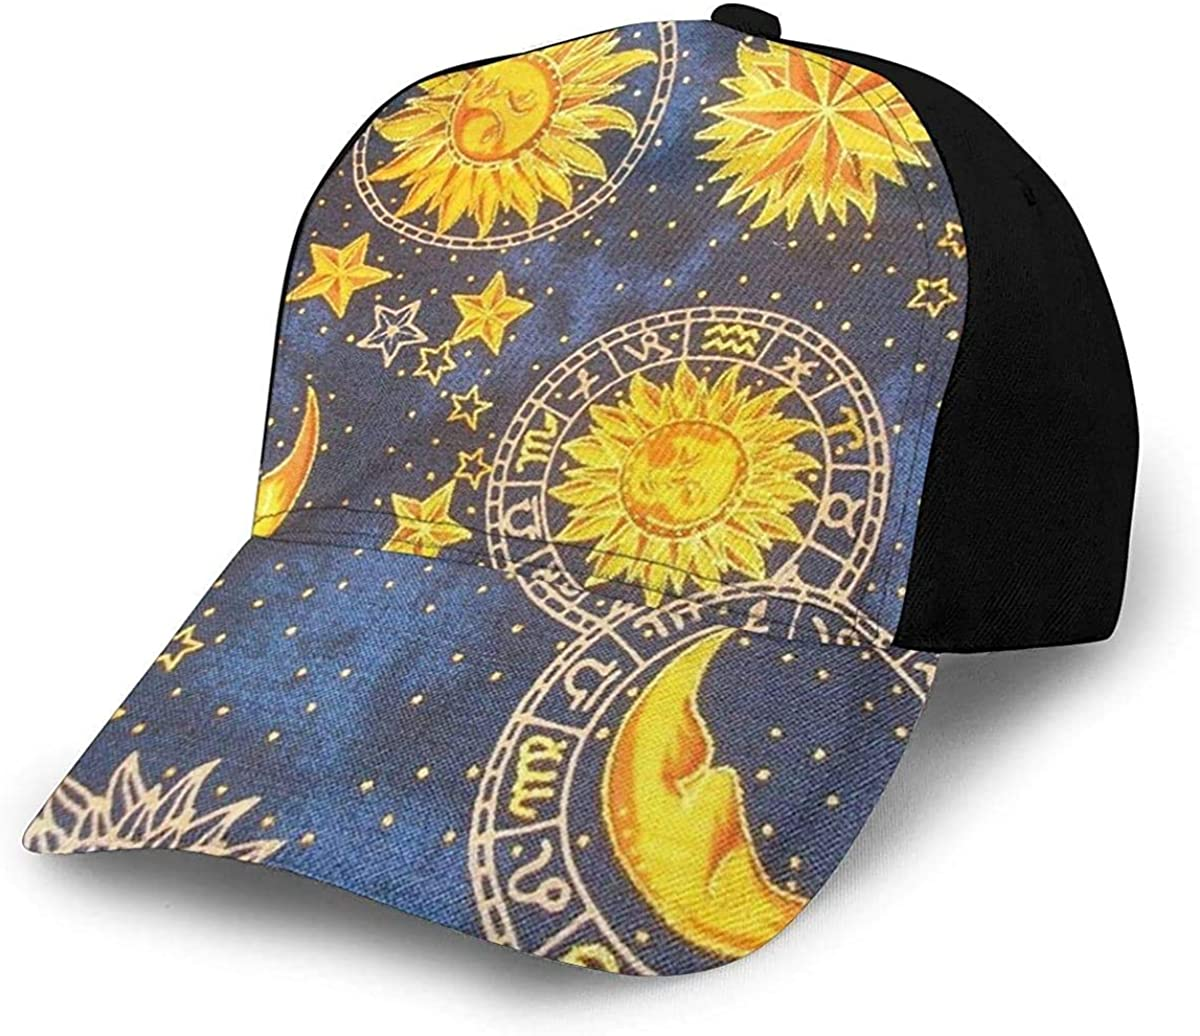 Sun Moon Stars Space Nebula Lightweight Unisex Baseball Caps Adjustable Breathable Sun Hat for Sport Outdoor Black